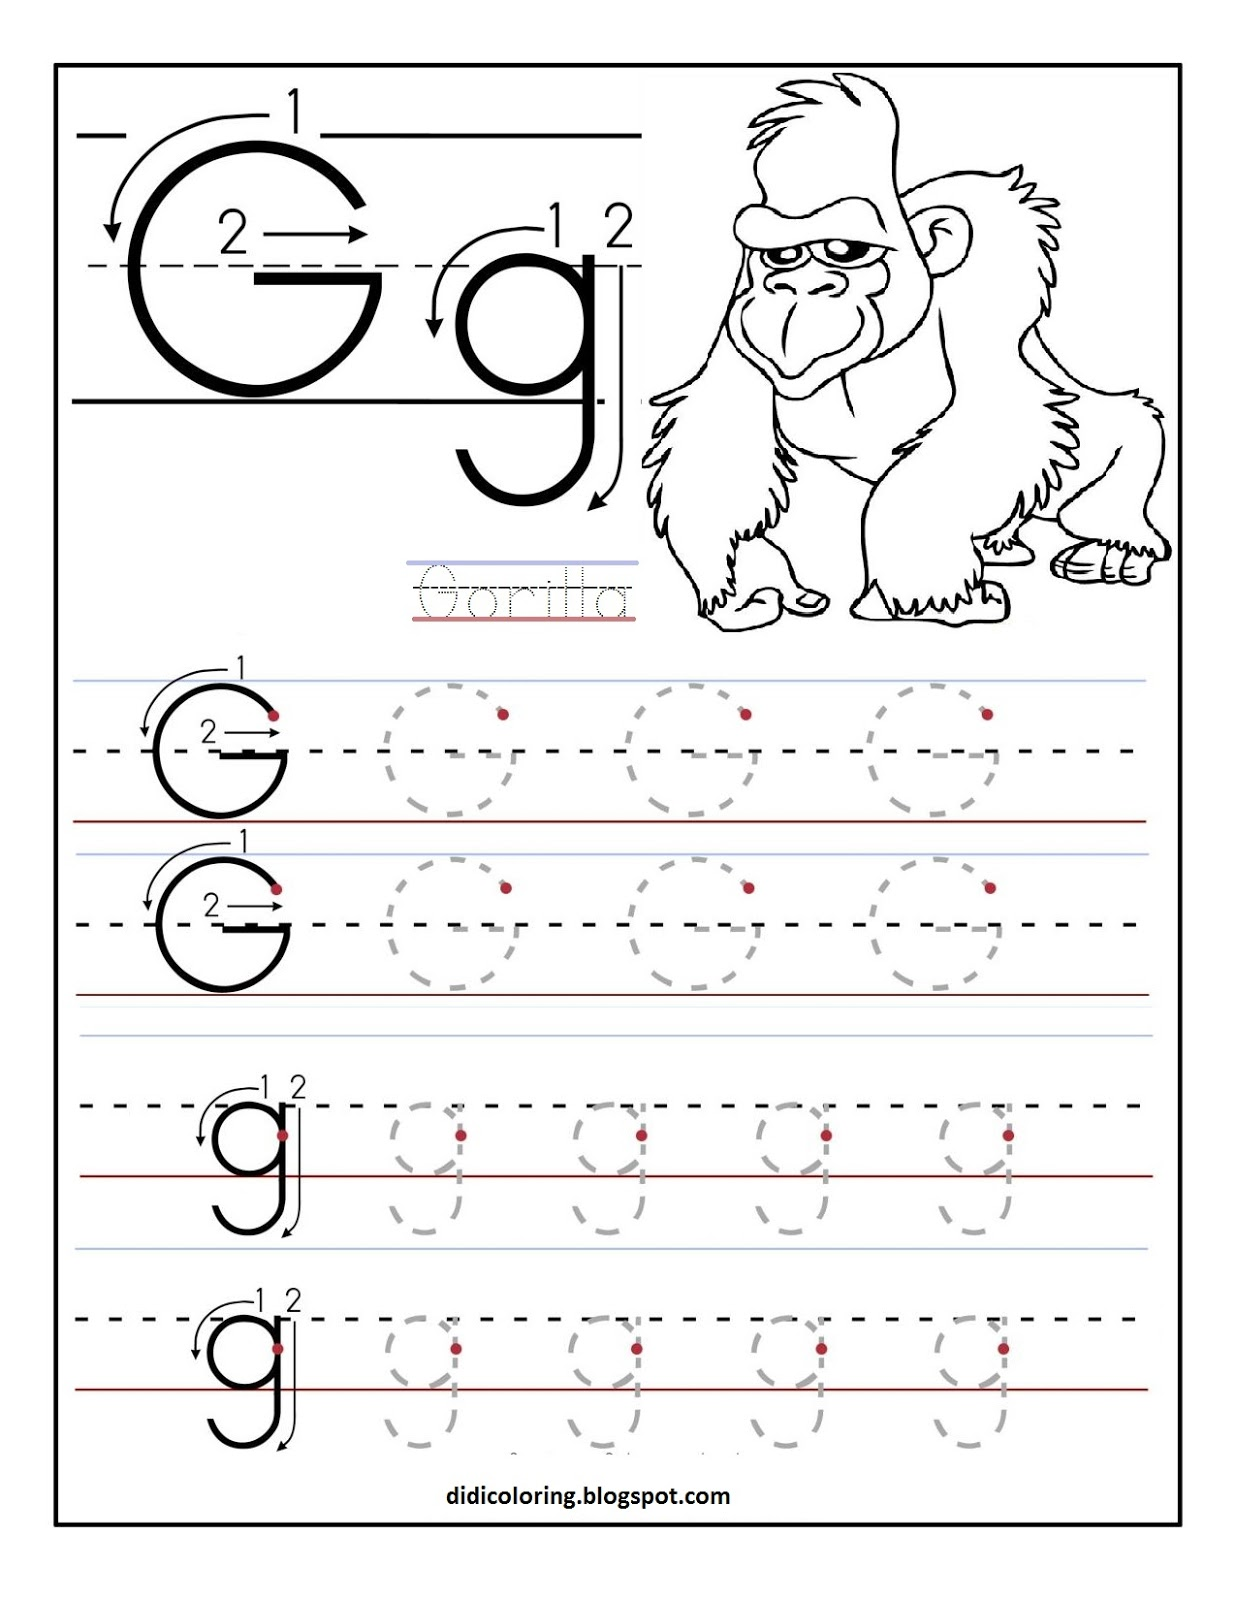 Worksheets Letter G Worksheets For Kindergarten letter g preschool worksheets